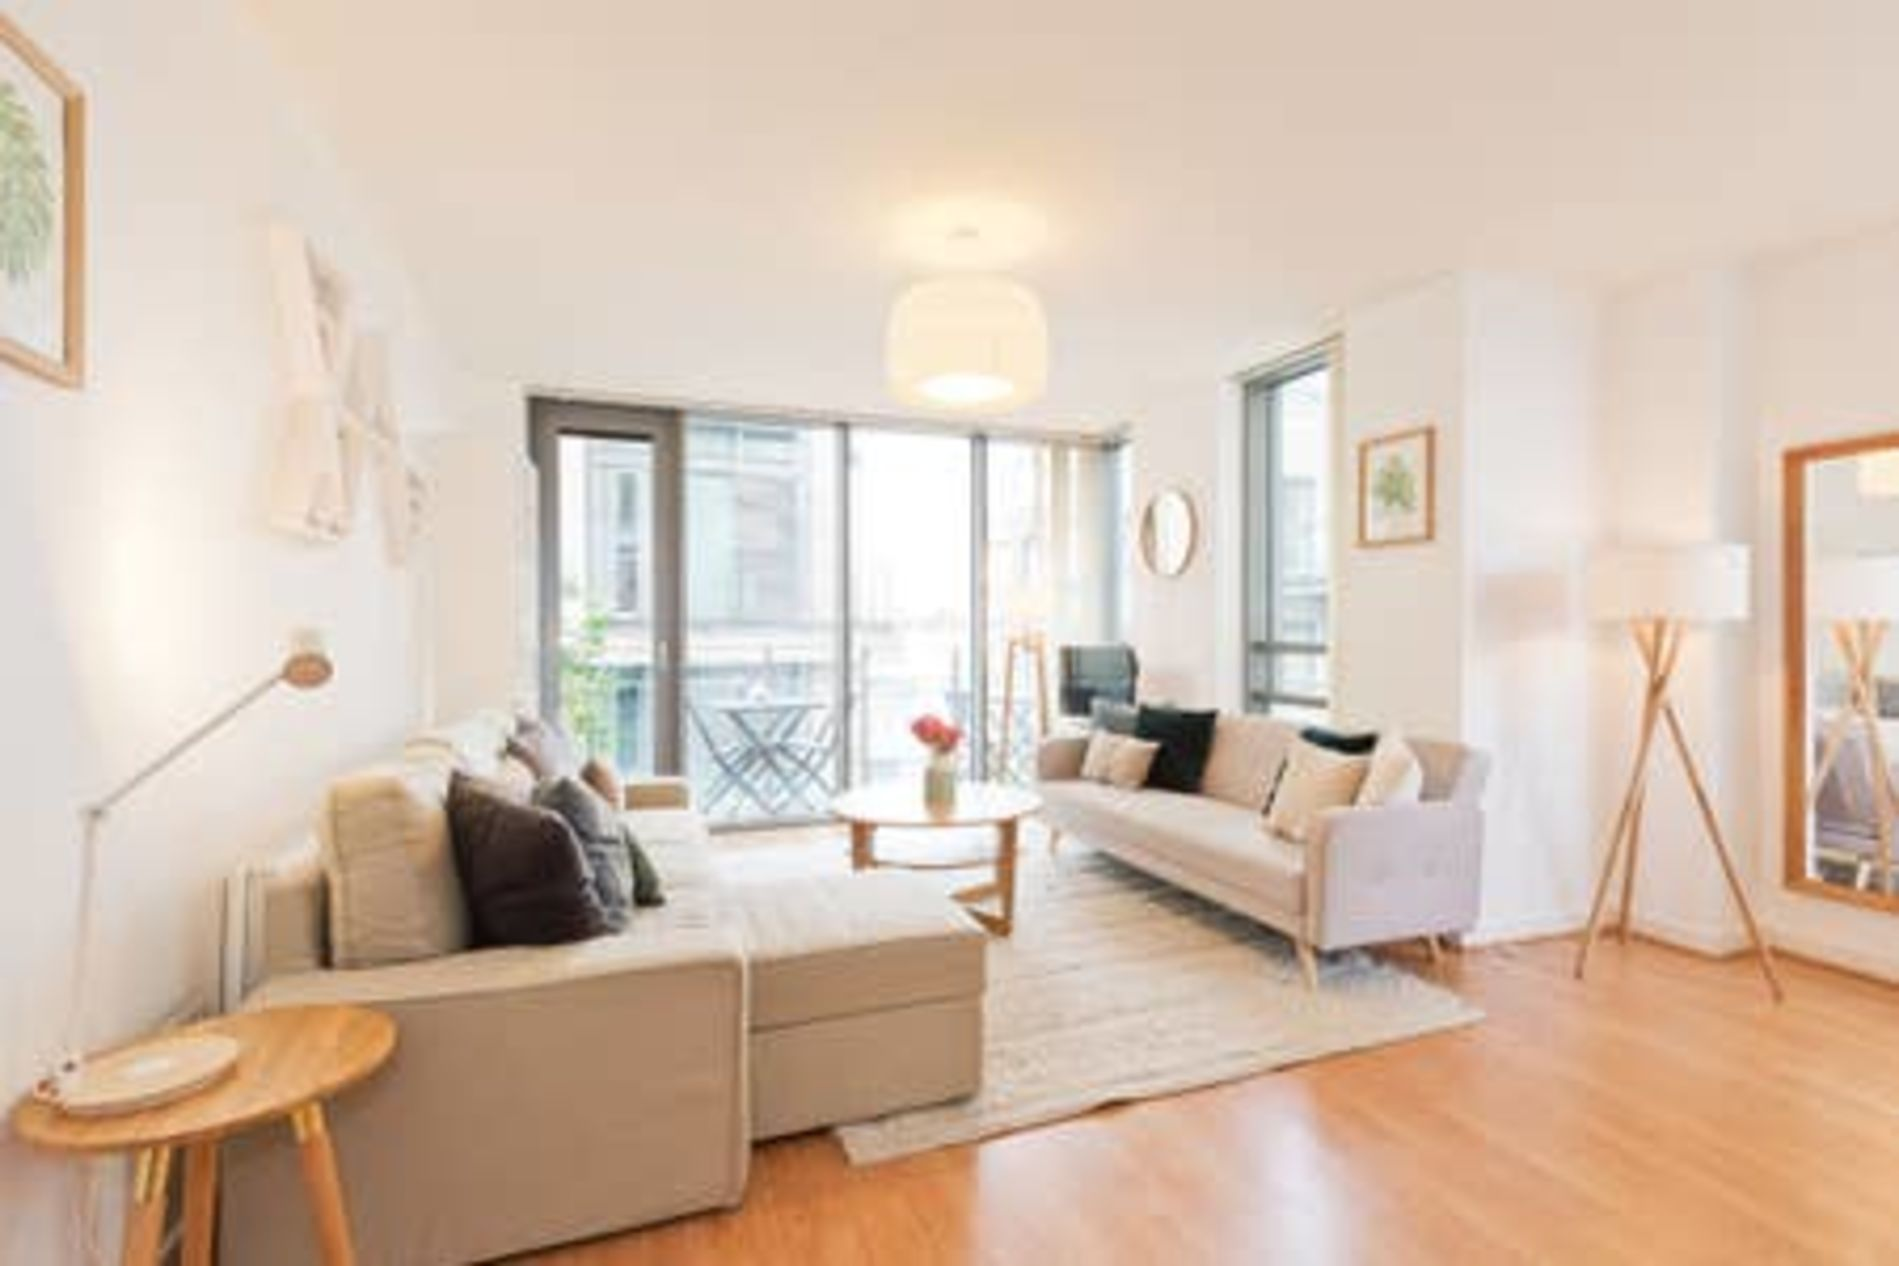 Luxurious serviced apartment in central Dublin location